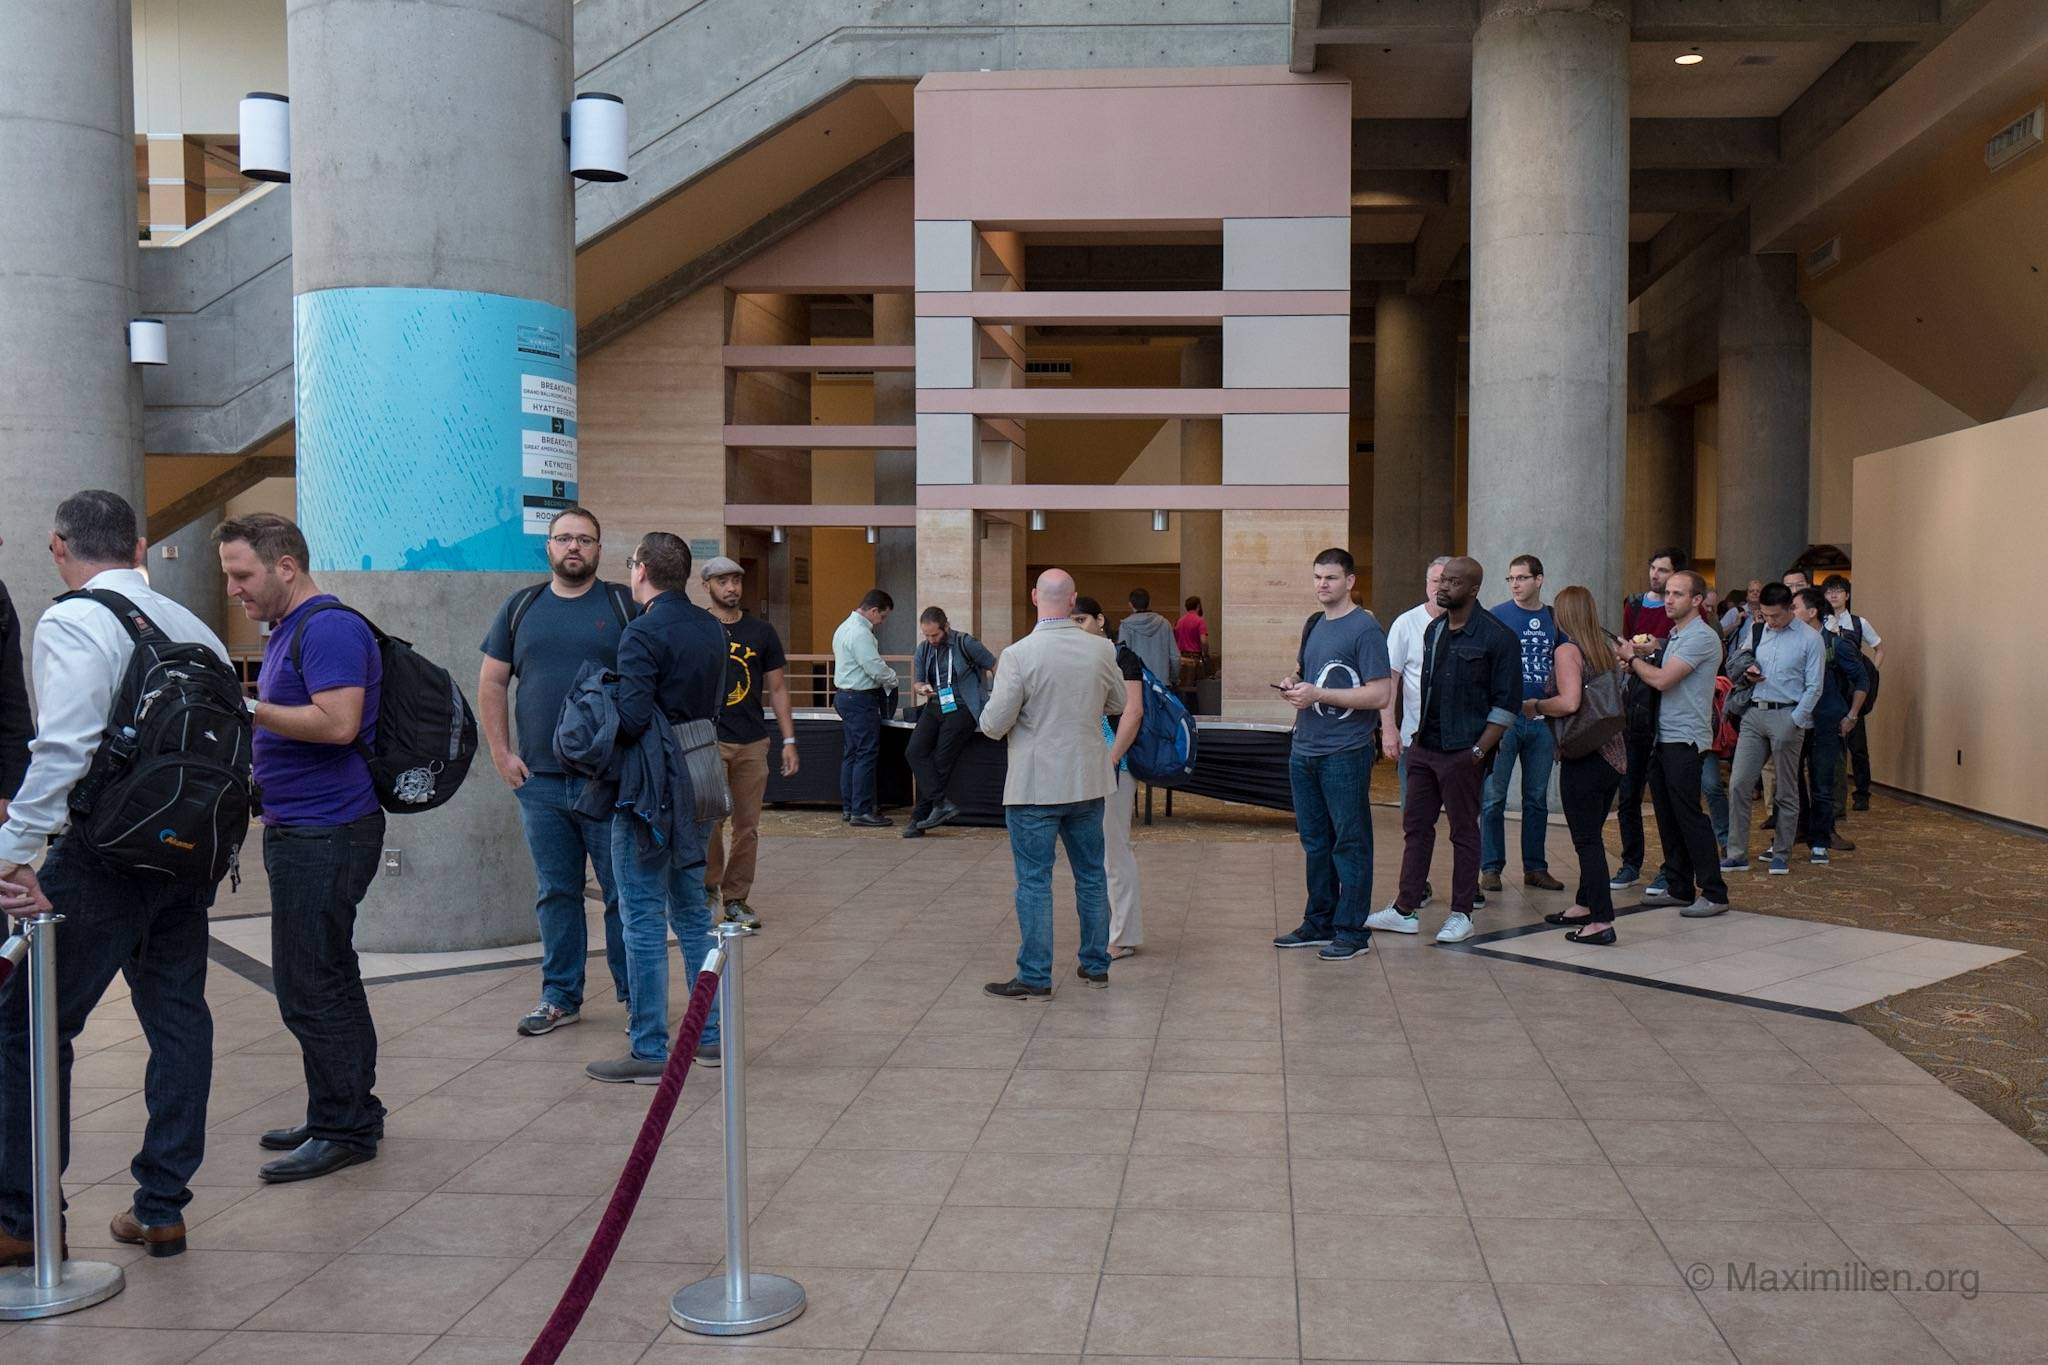 Cloud Foundry Summit participants lining up at the summit in Santa Clara in 2016